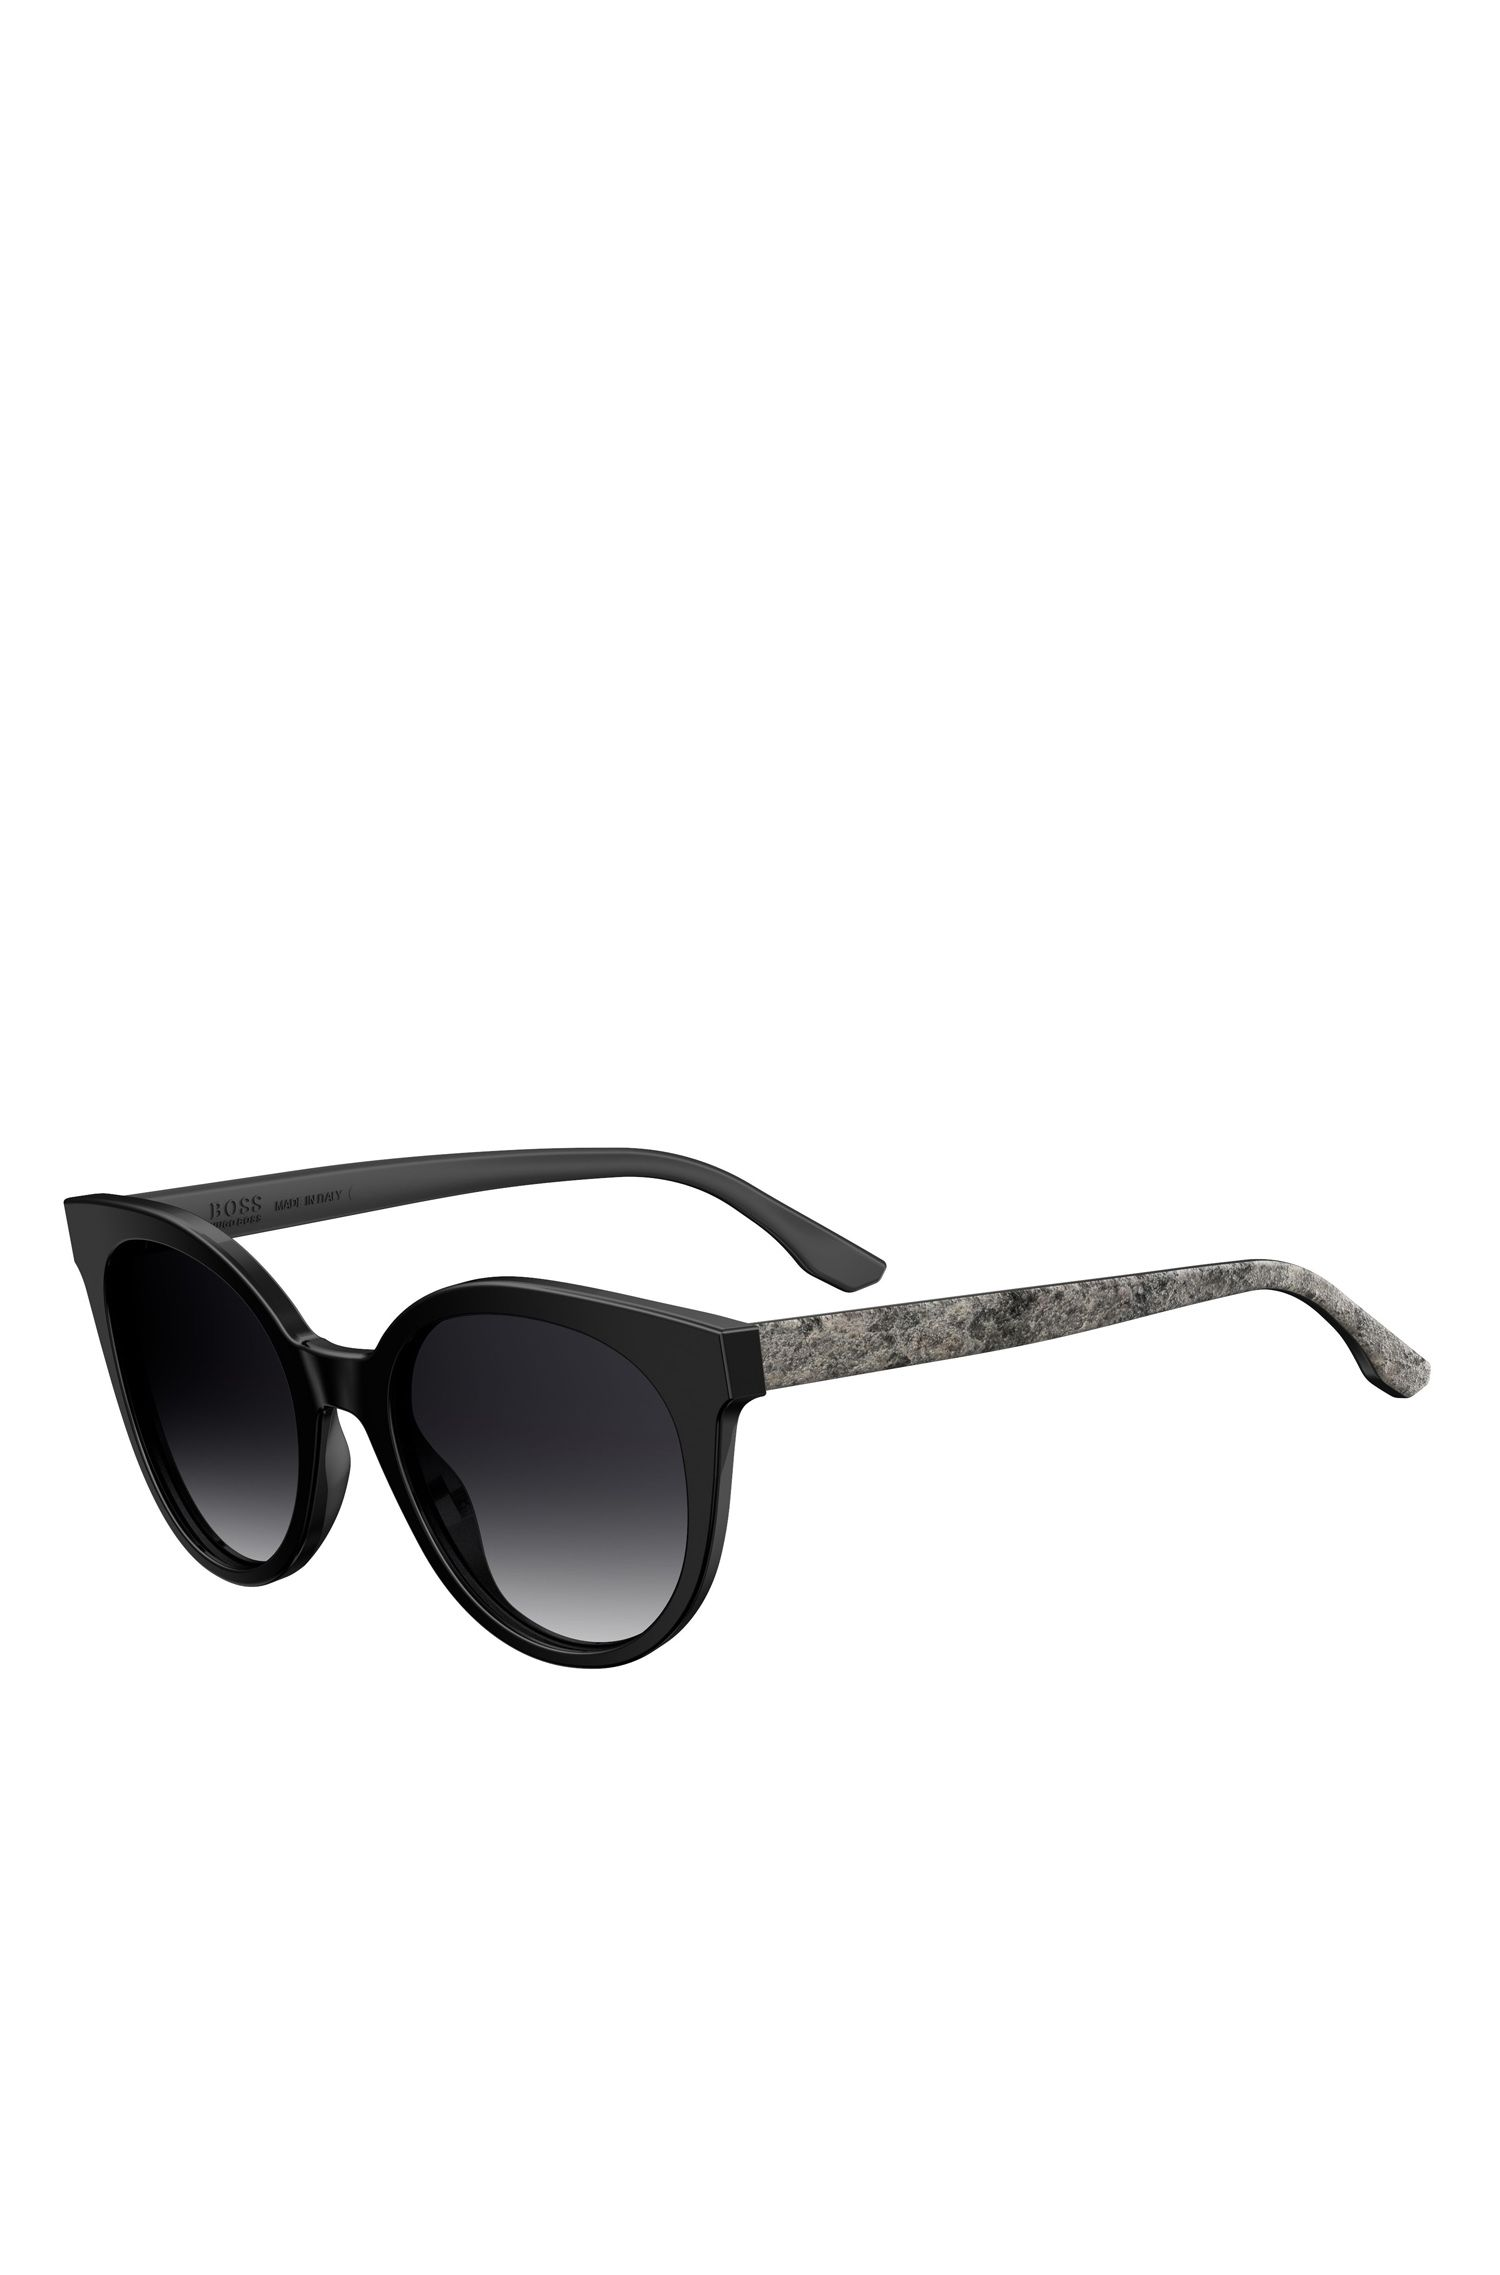 Black Acetate Round Sunglasses | BOSS 0890S